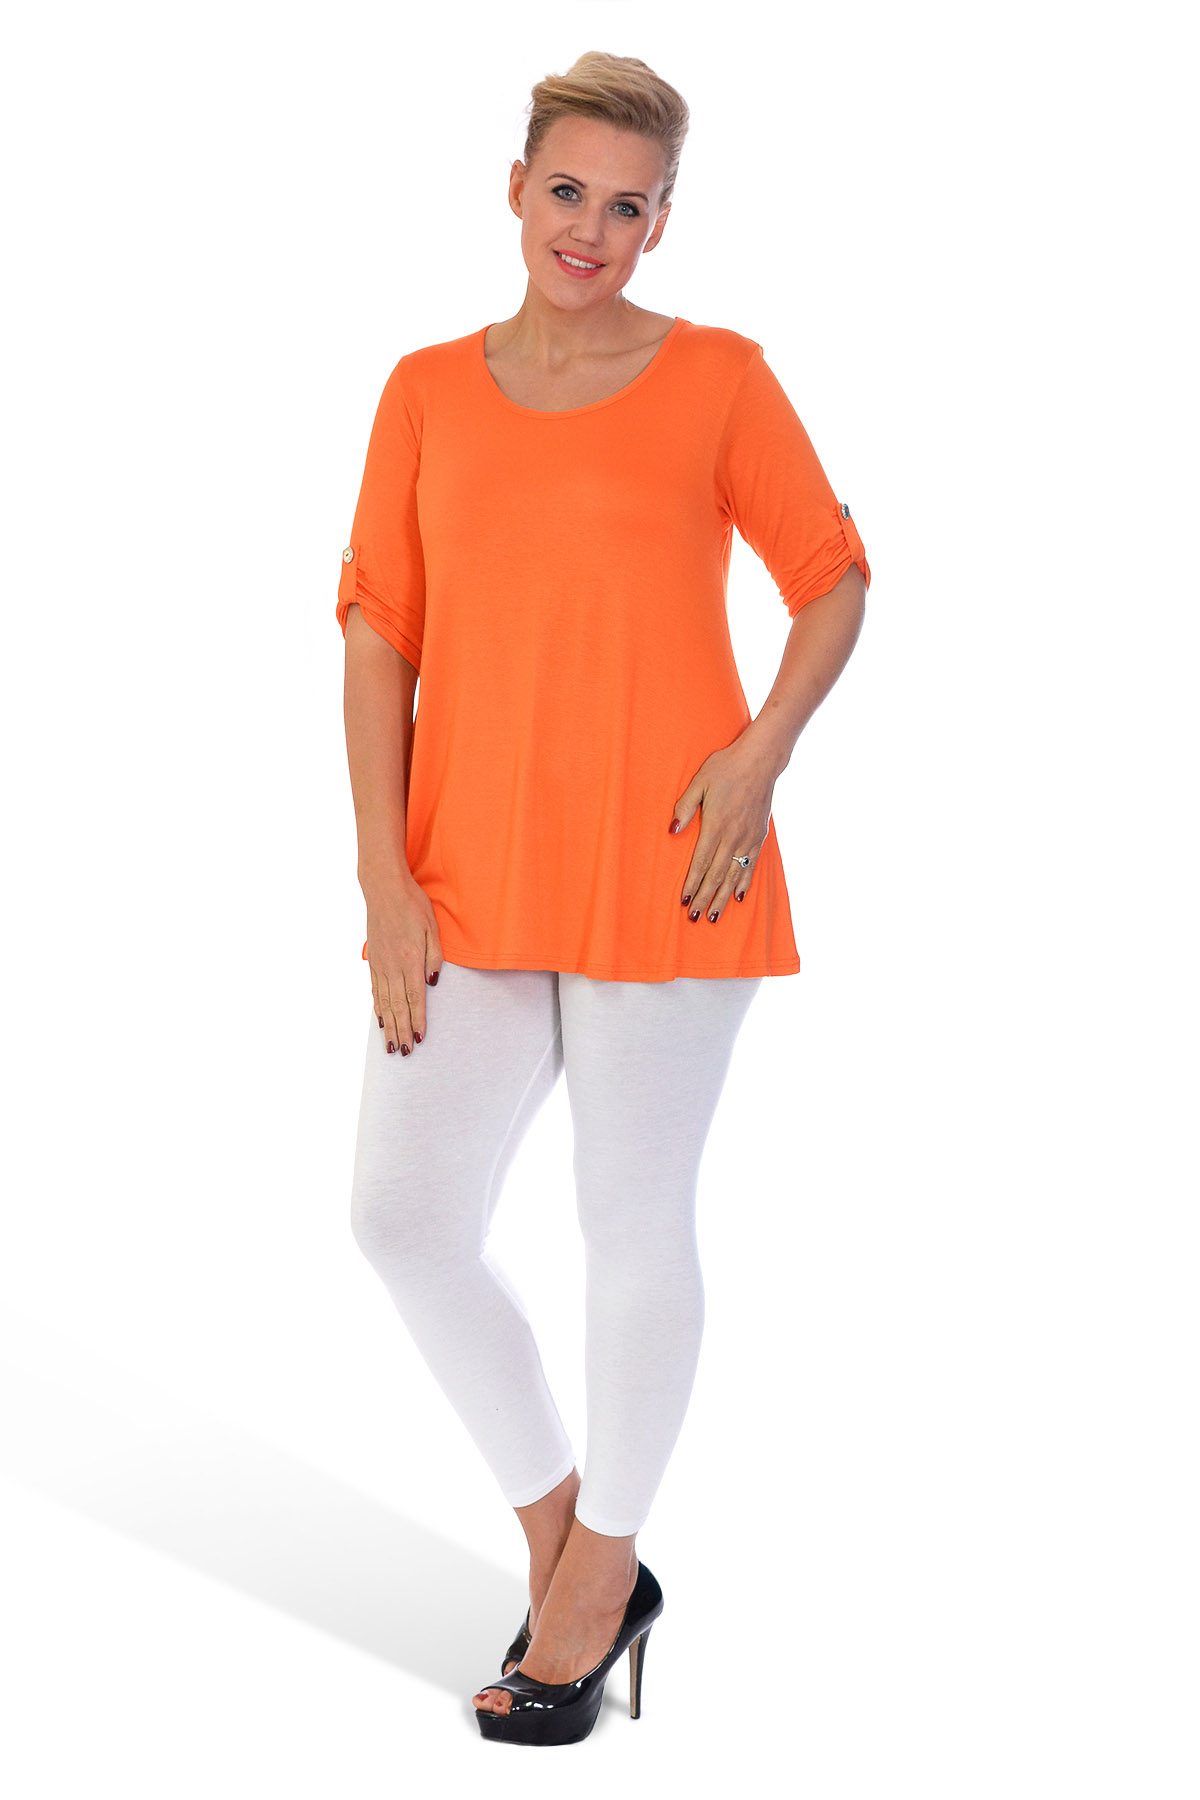 New womens plus size top ladies plain tunic 3 4 button for Plus size 3 4 sleeve tee shirts